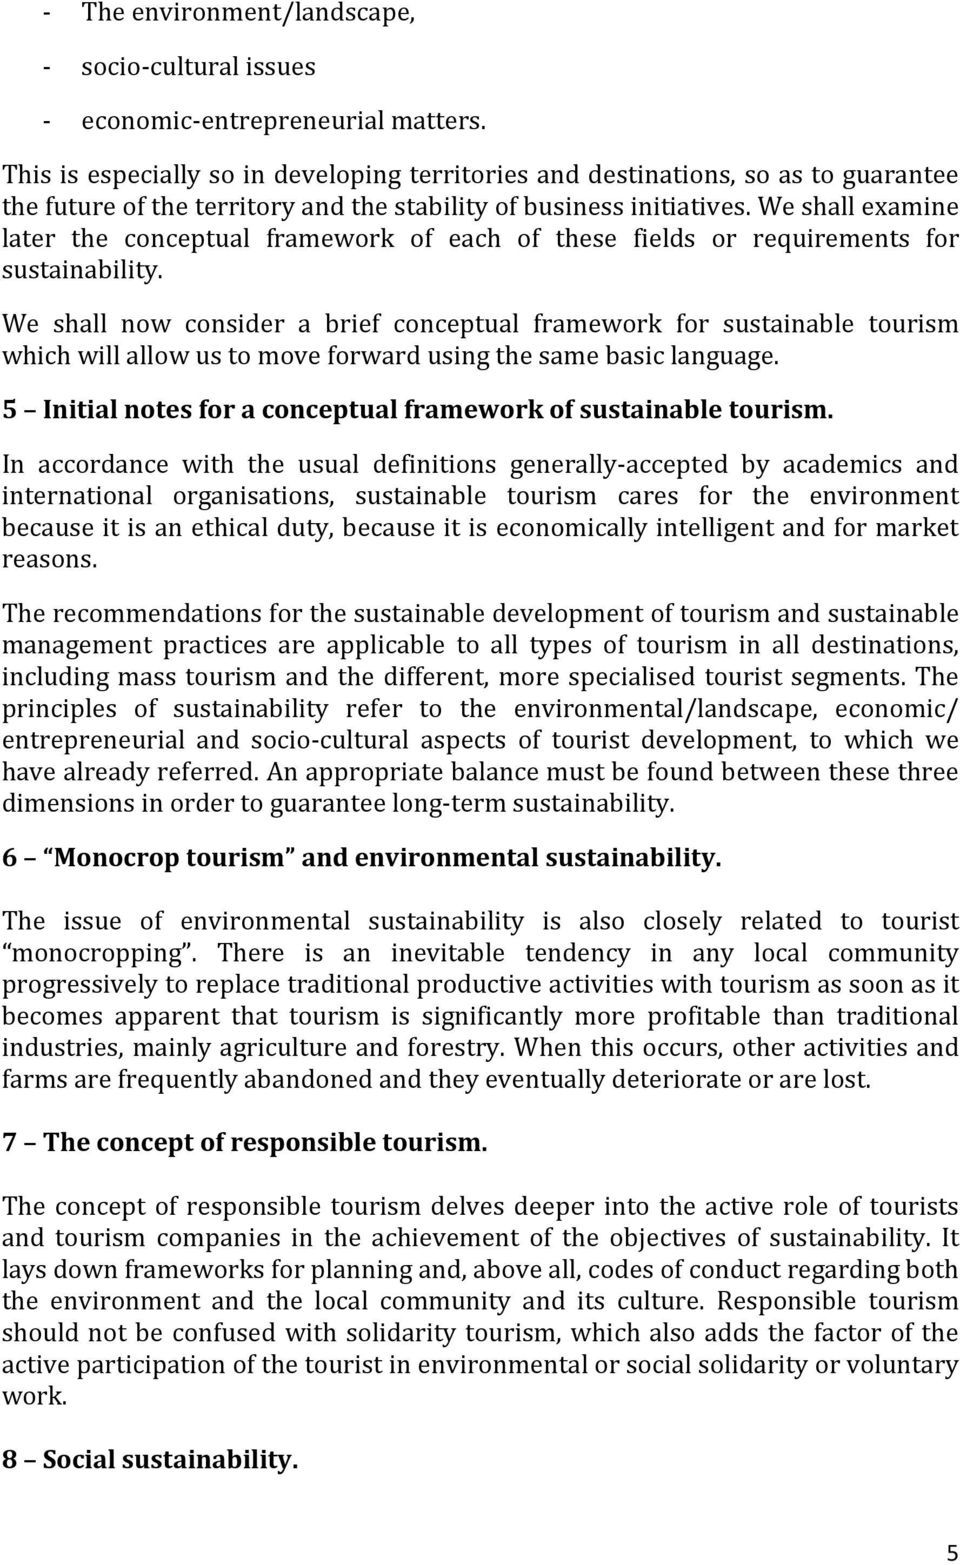 We shall examine later the conceptual framework of each of these fields or requirements for sustainability.